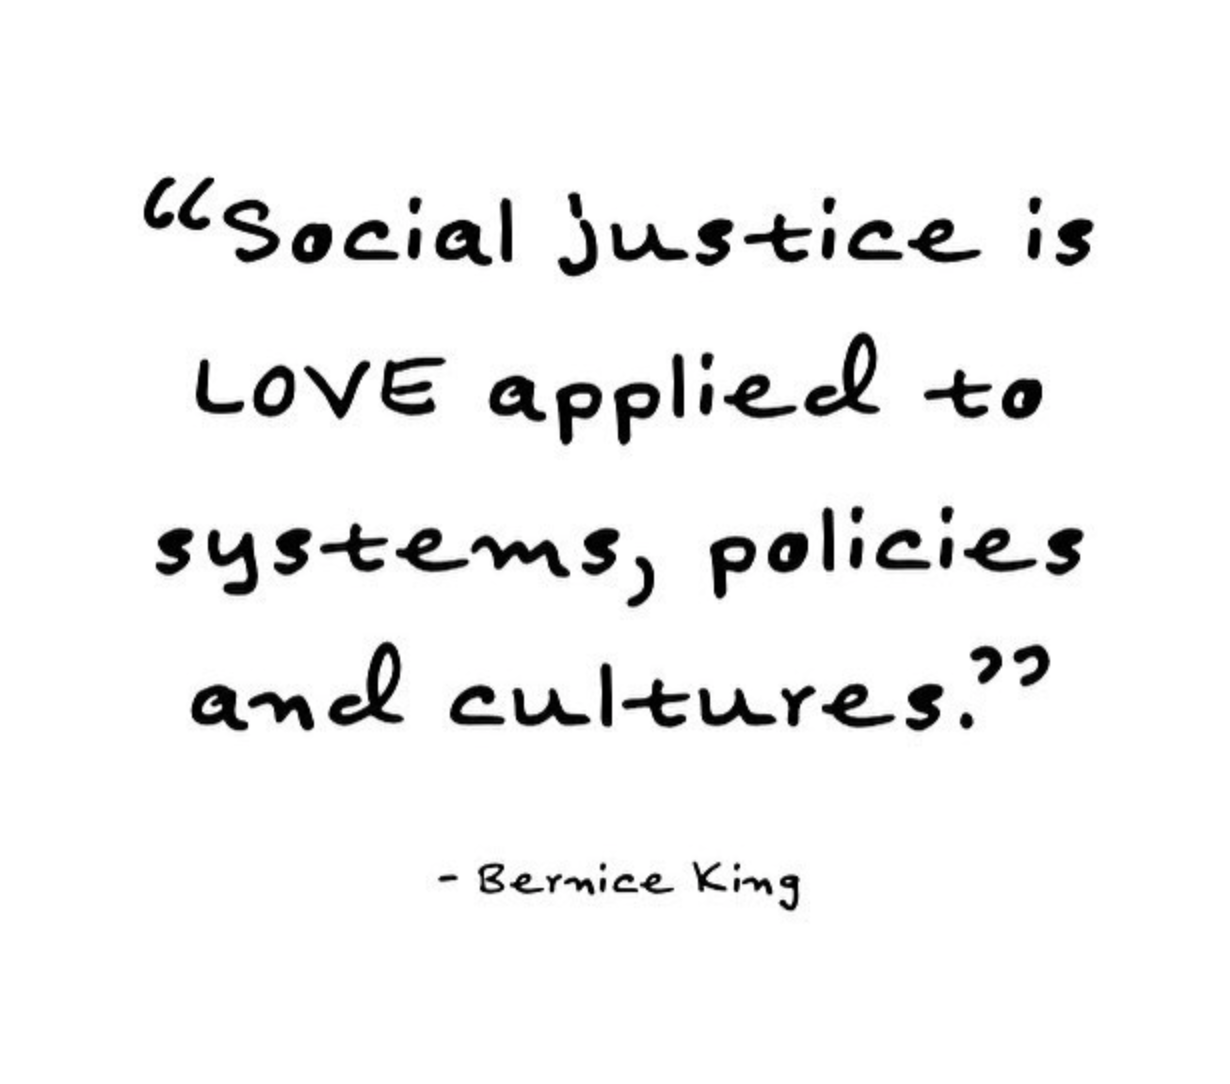 """a quote written out by hand that reads, """"social justice is love applied to systems, policies and cultures"""". quote by Bermice King."""